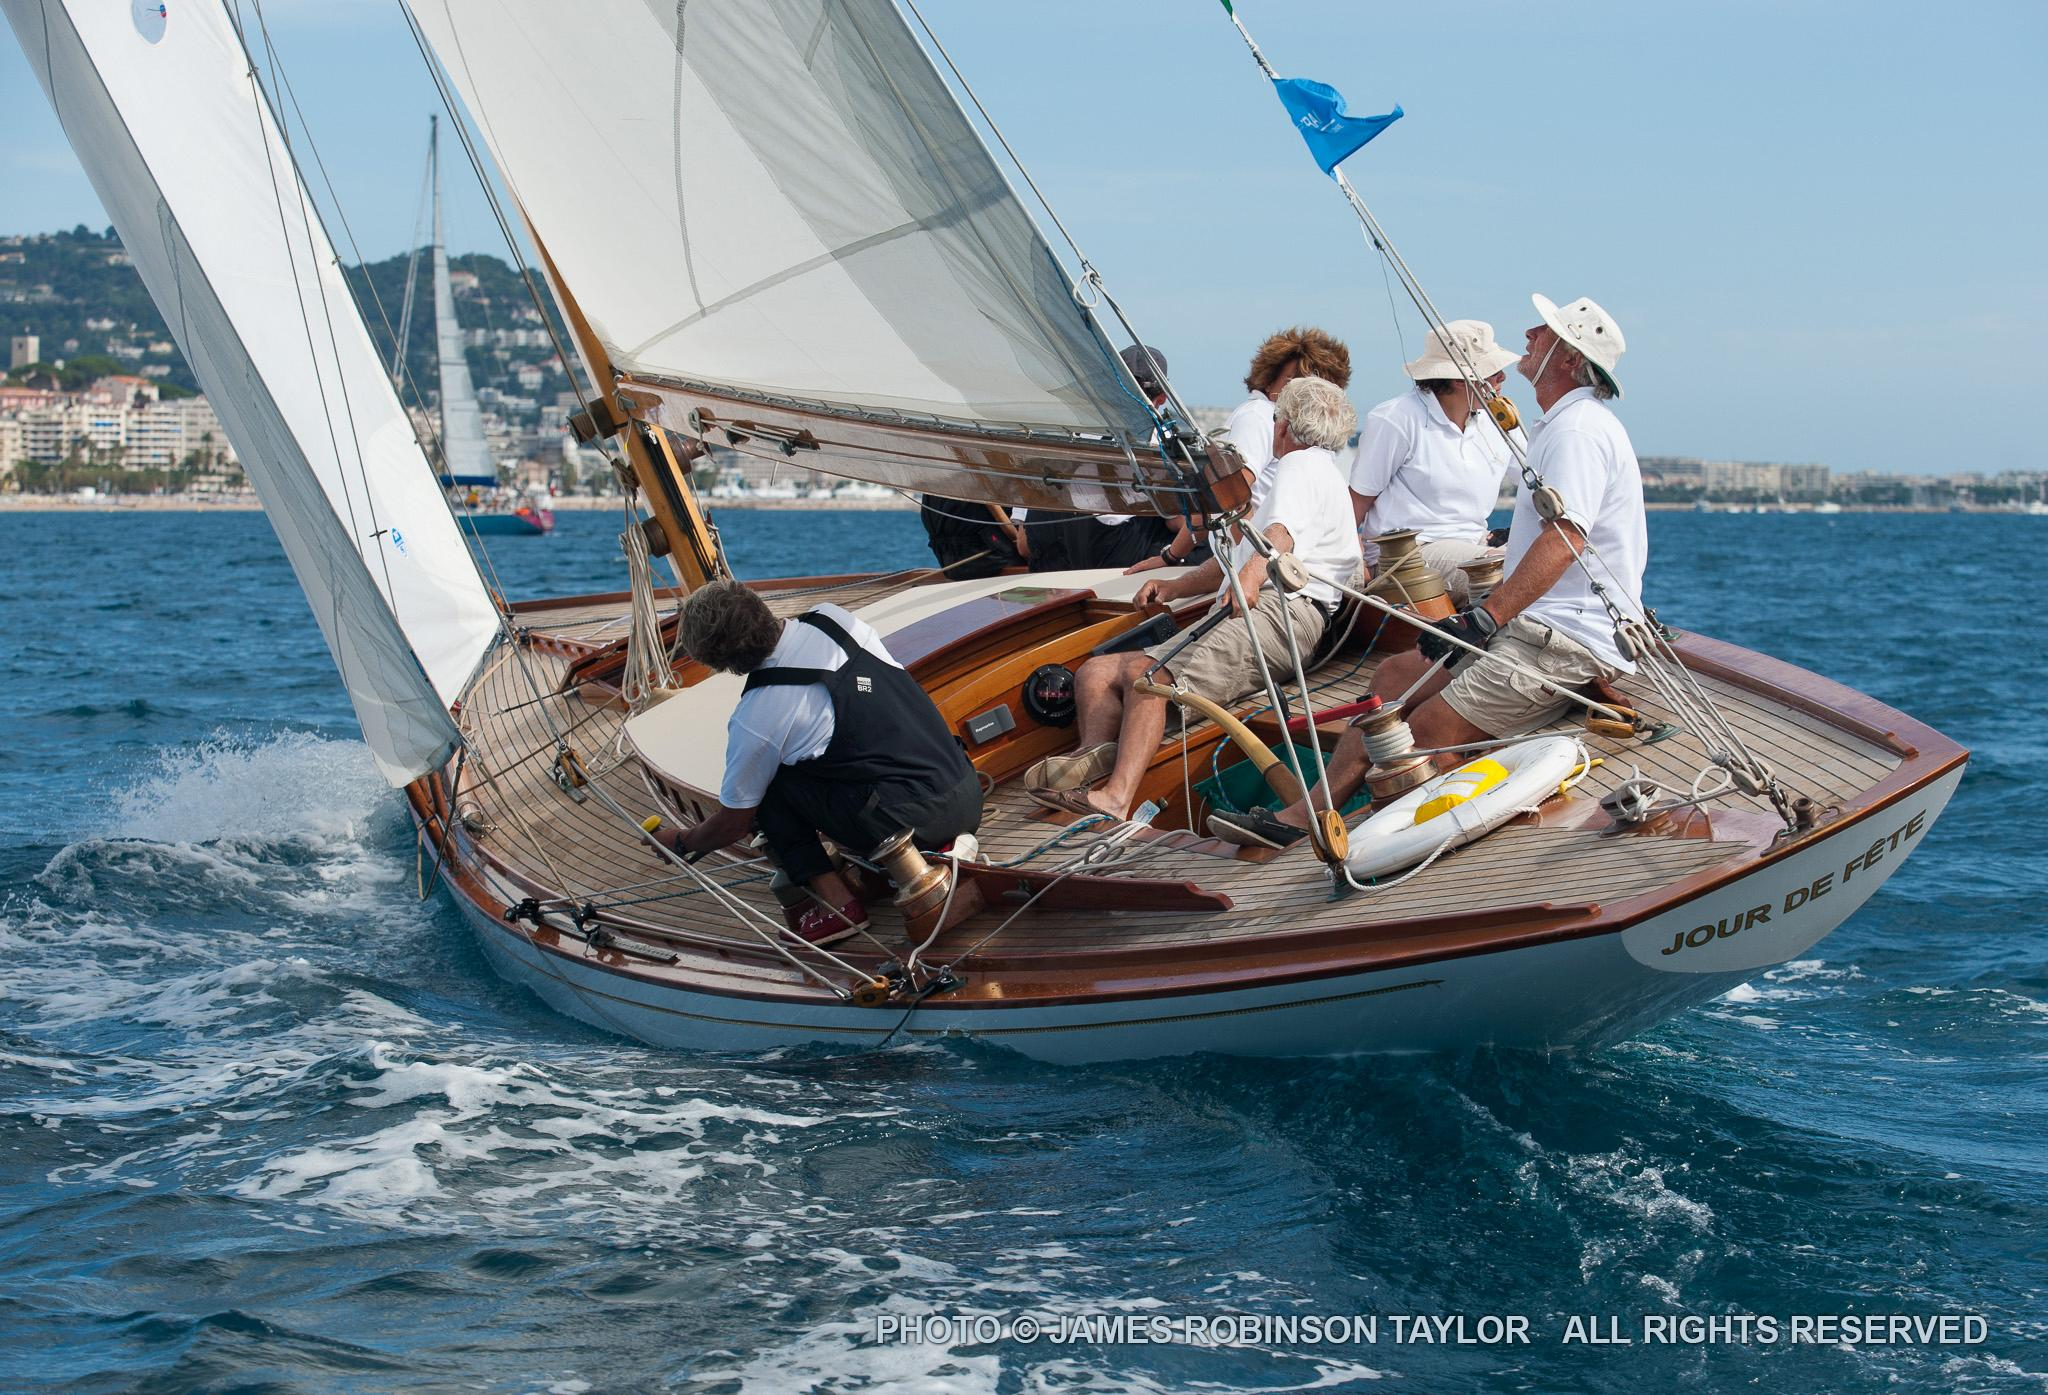 1930 Frank Paine Q Class By Lawley Sail Boat For Sale